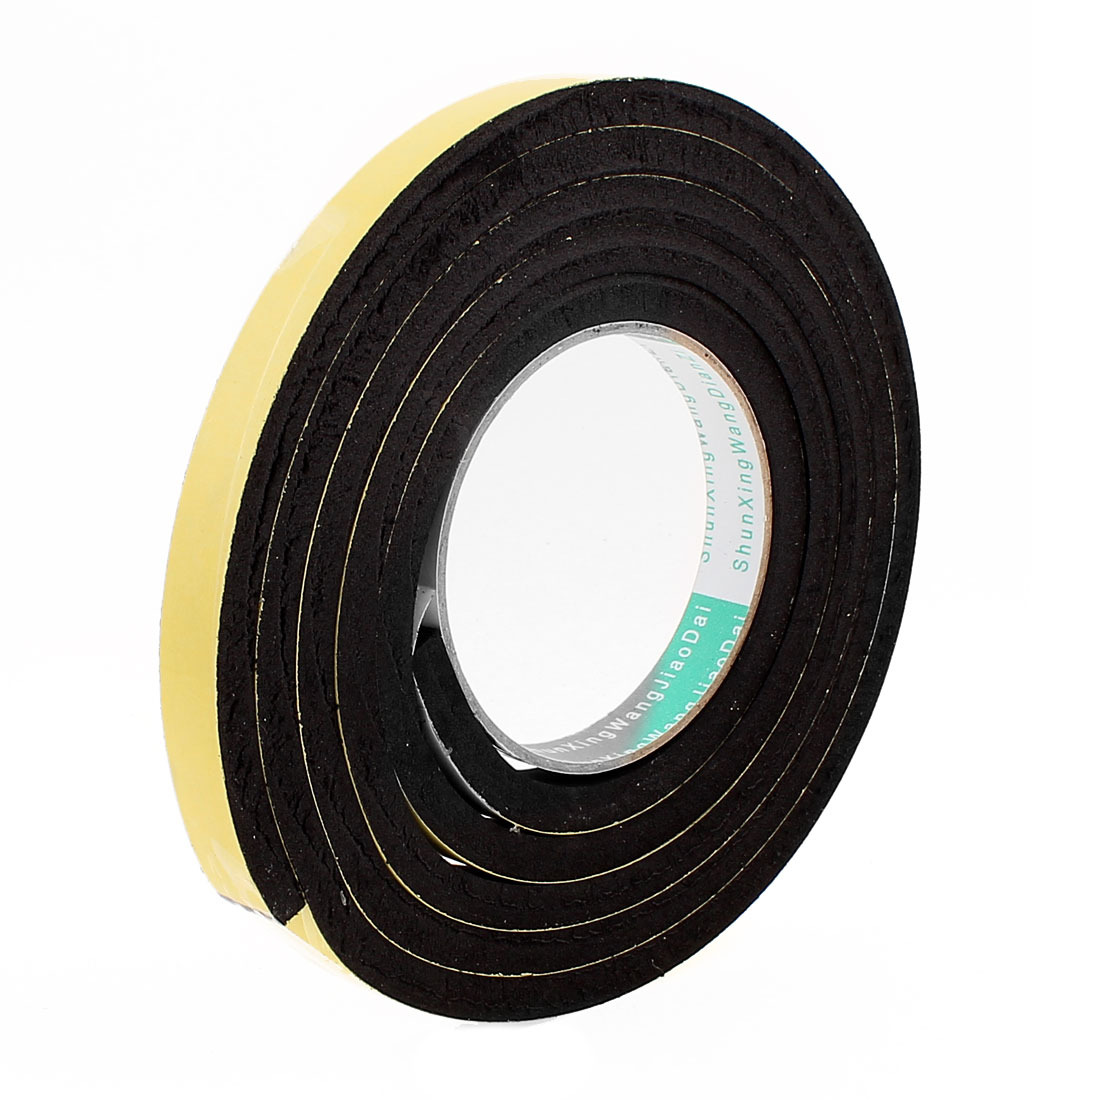 2 Meters 15mm x 8mm Single Side Adhesive EVA Foam Sealing Tap